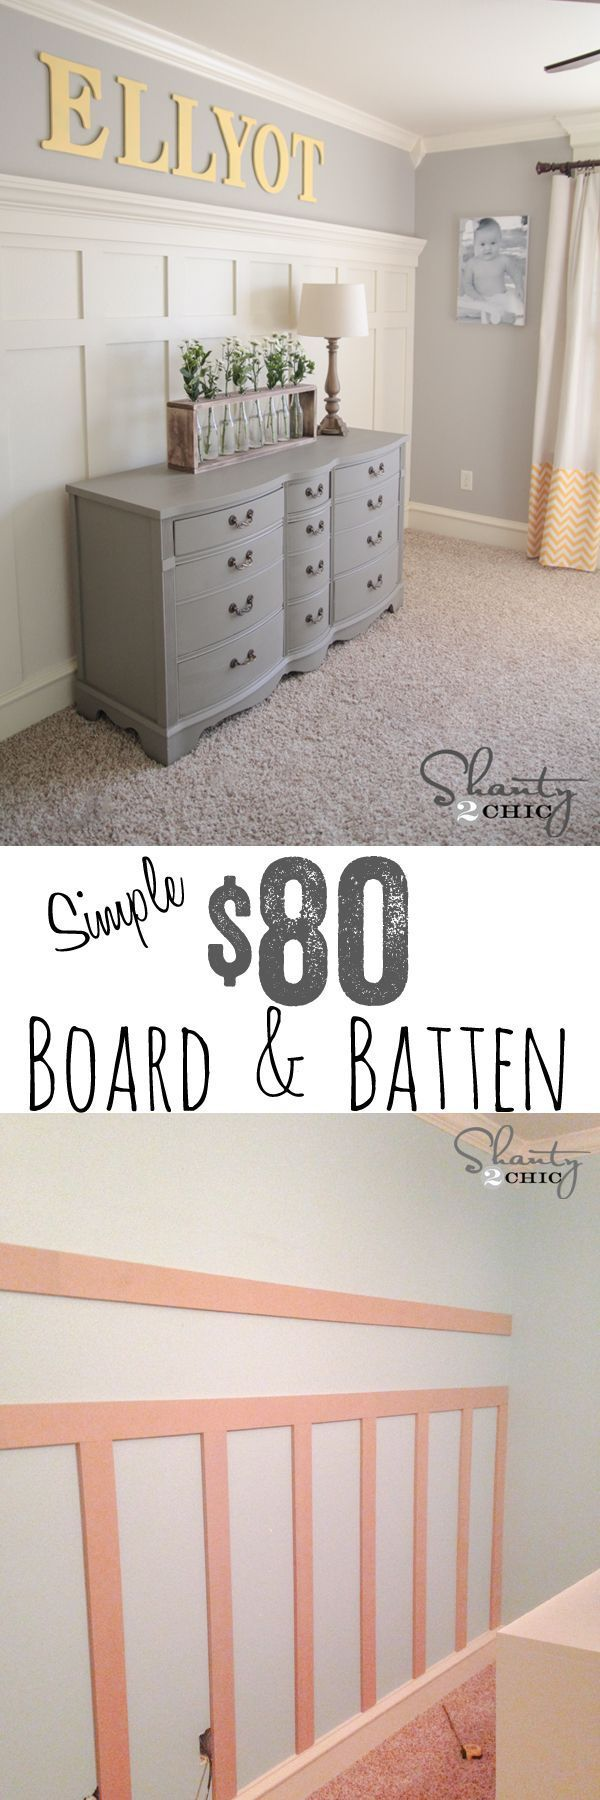 Wainscot solutions inc custom assembled wainscoting -  80 Board And Batten Tutorial Giveaway